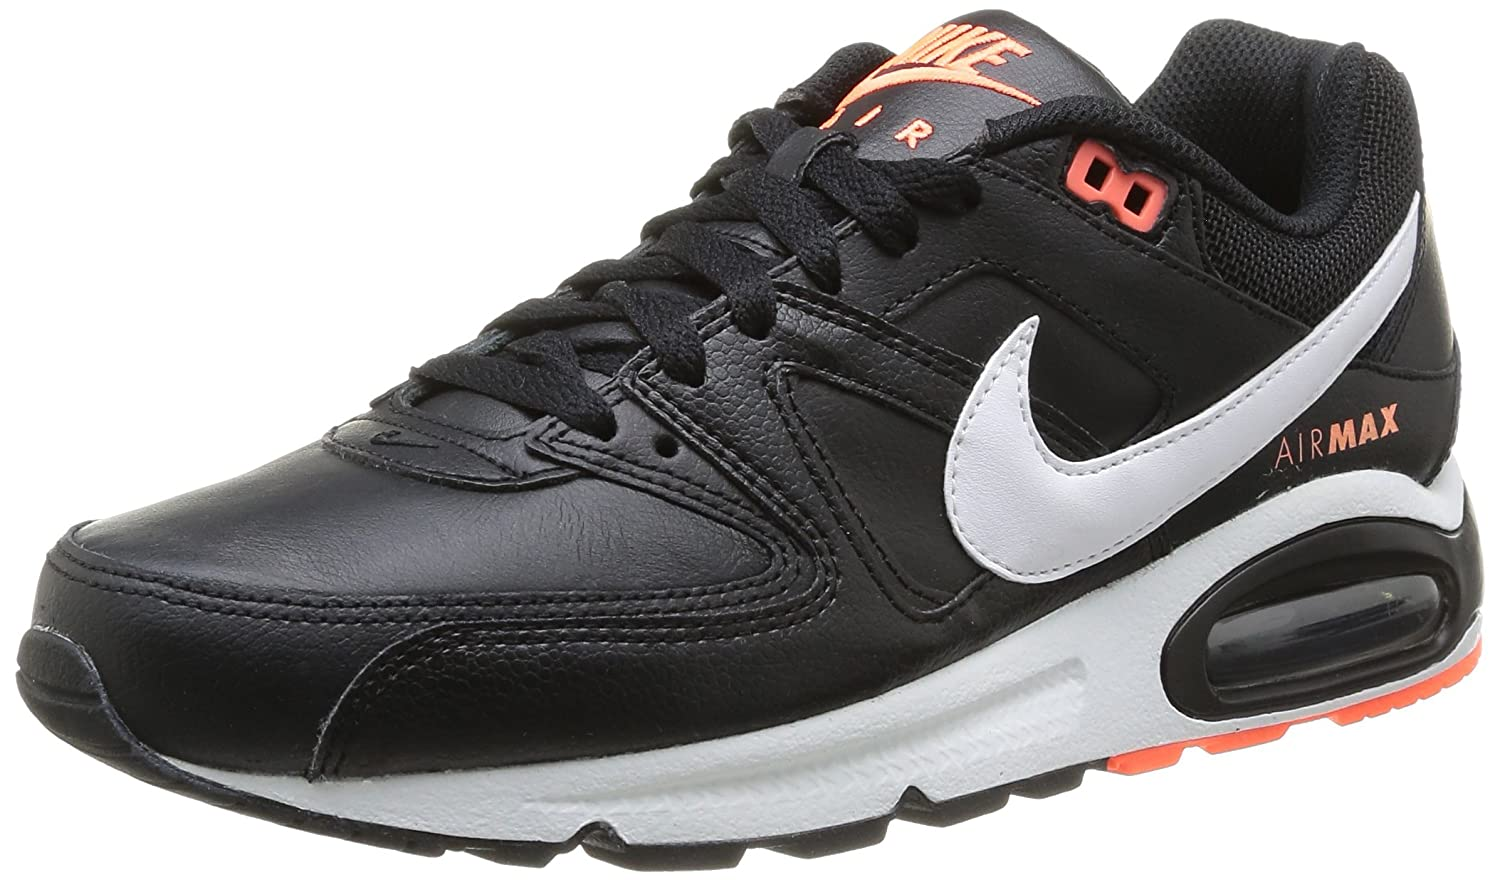 Nike 409998 018 Air Max Command Leather Herren Sportschuhe Running